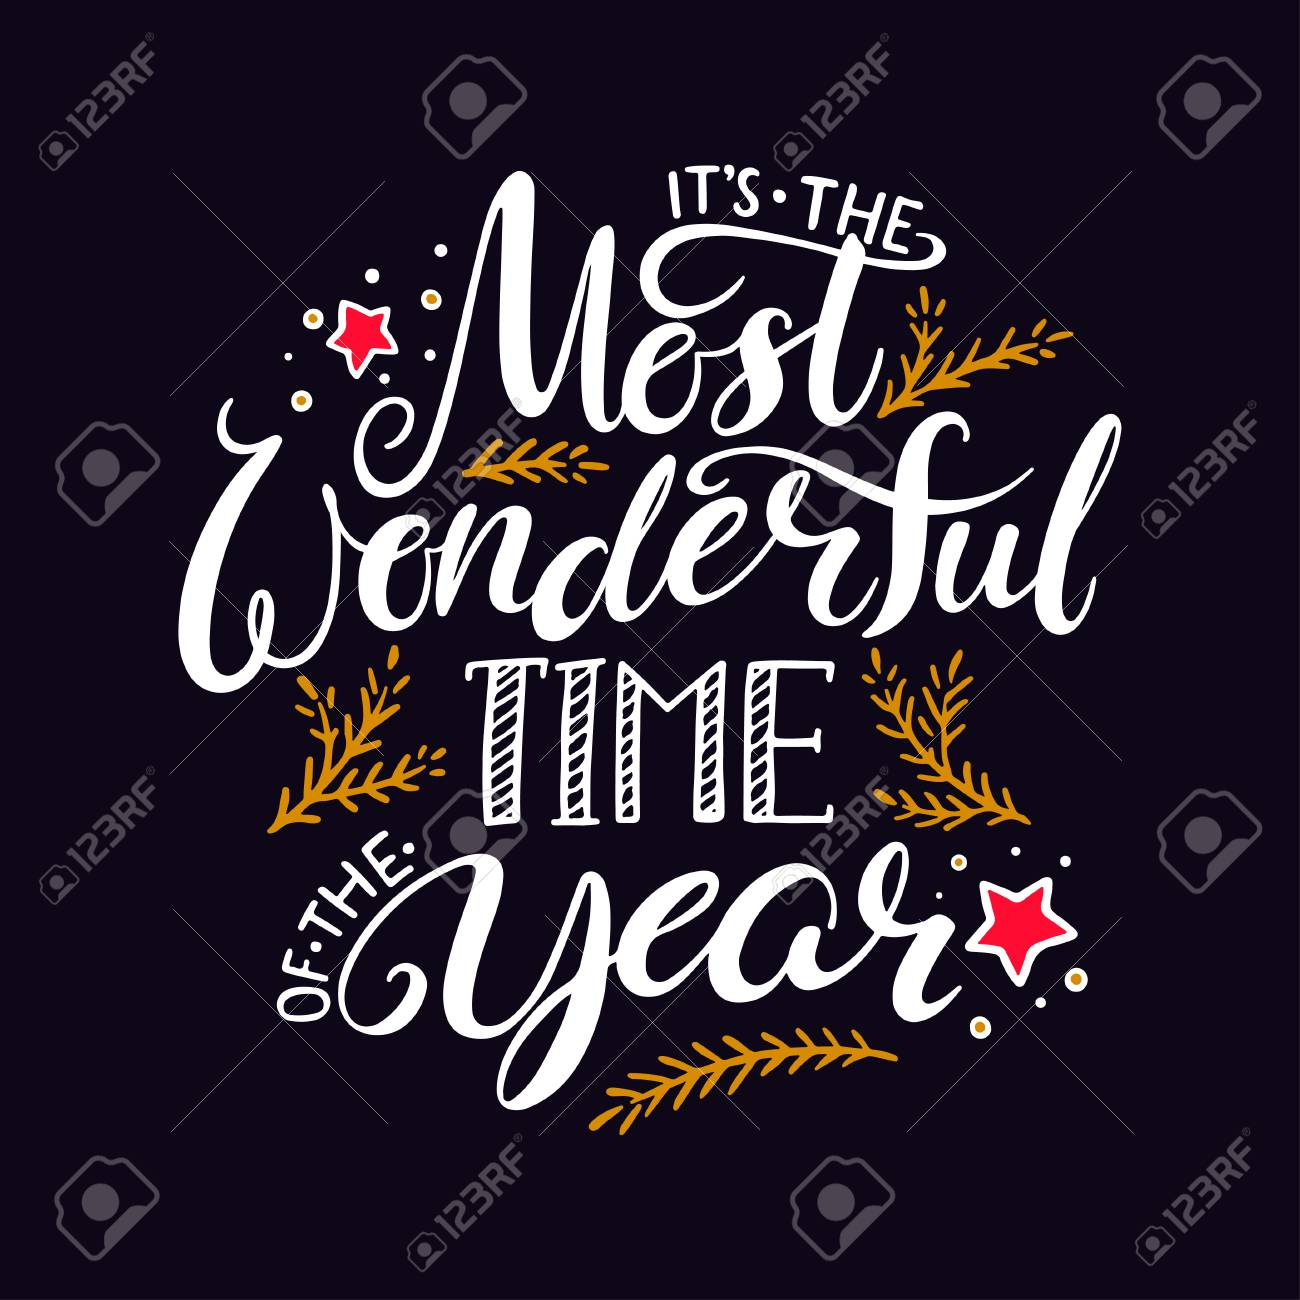 the most wonderful time of the year. hand written christmas lettering on black background - 68634607